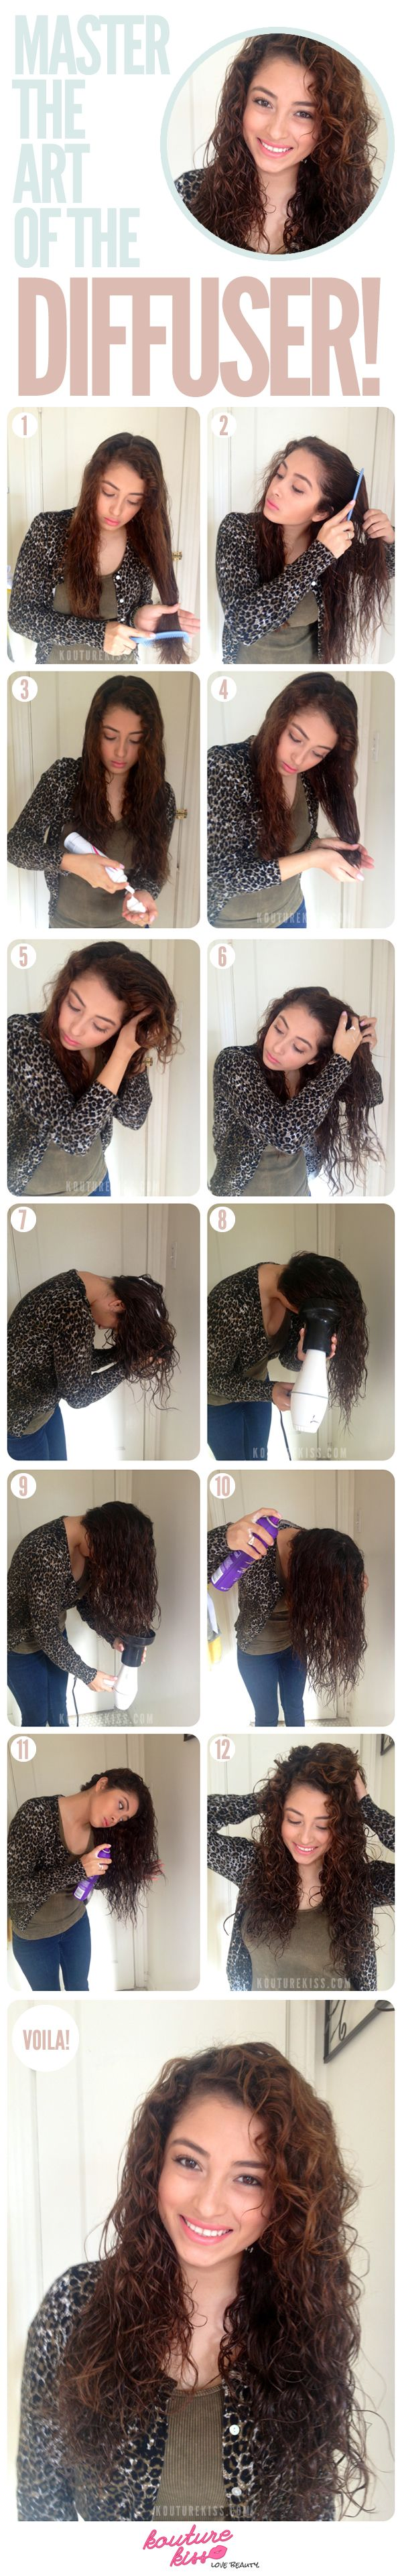 Hey There, Curly-haired Girl! Master The Art Of The Diffuser